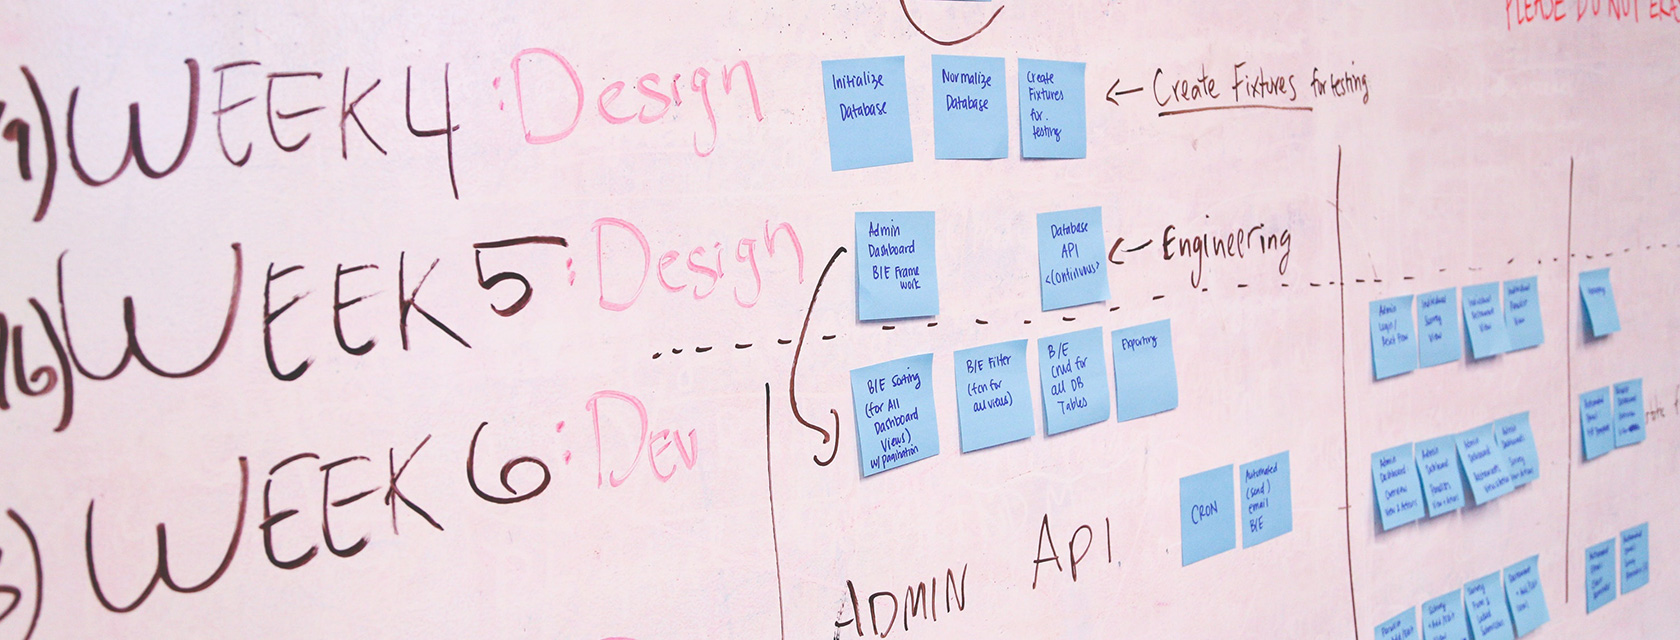 DevOps – A Culture of Continuous Innovation in Action